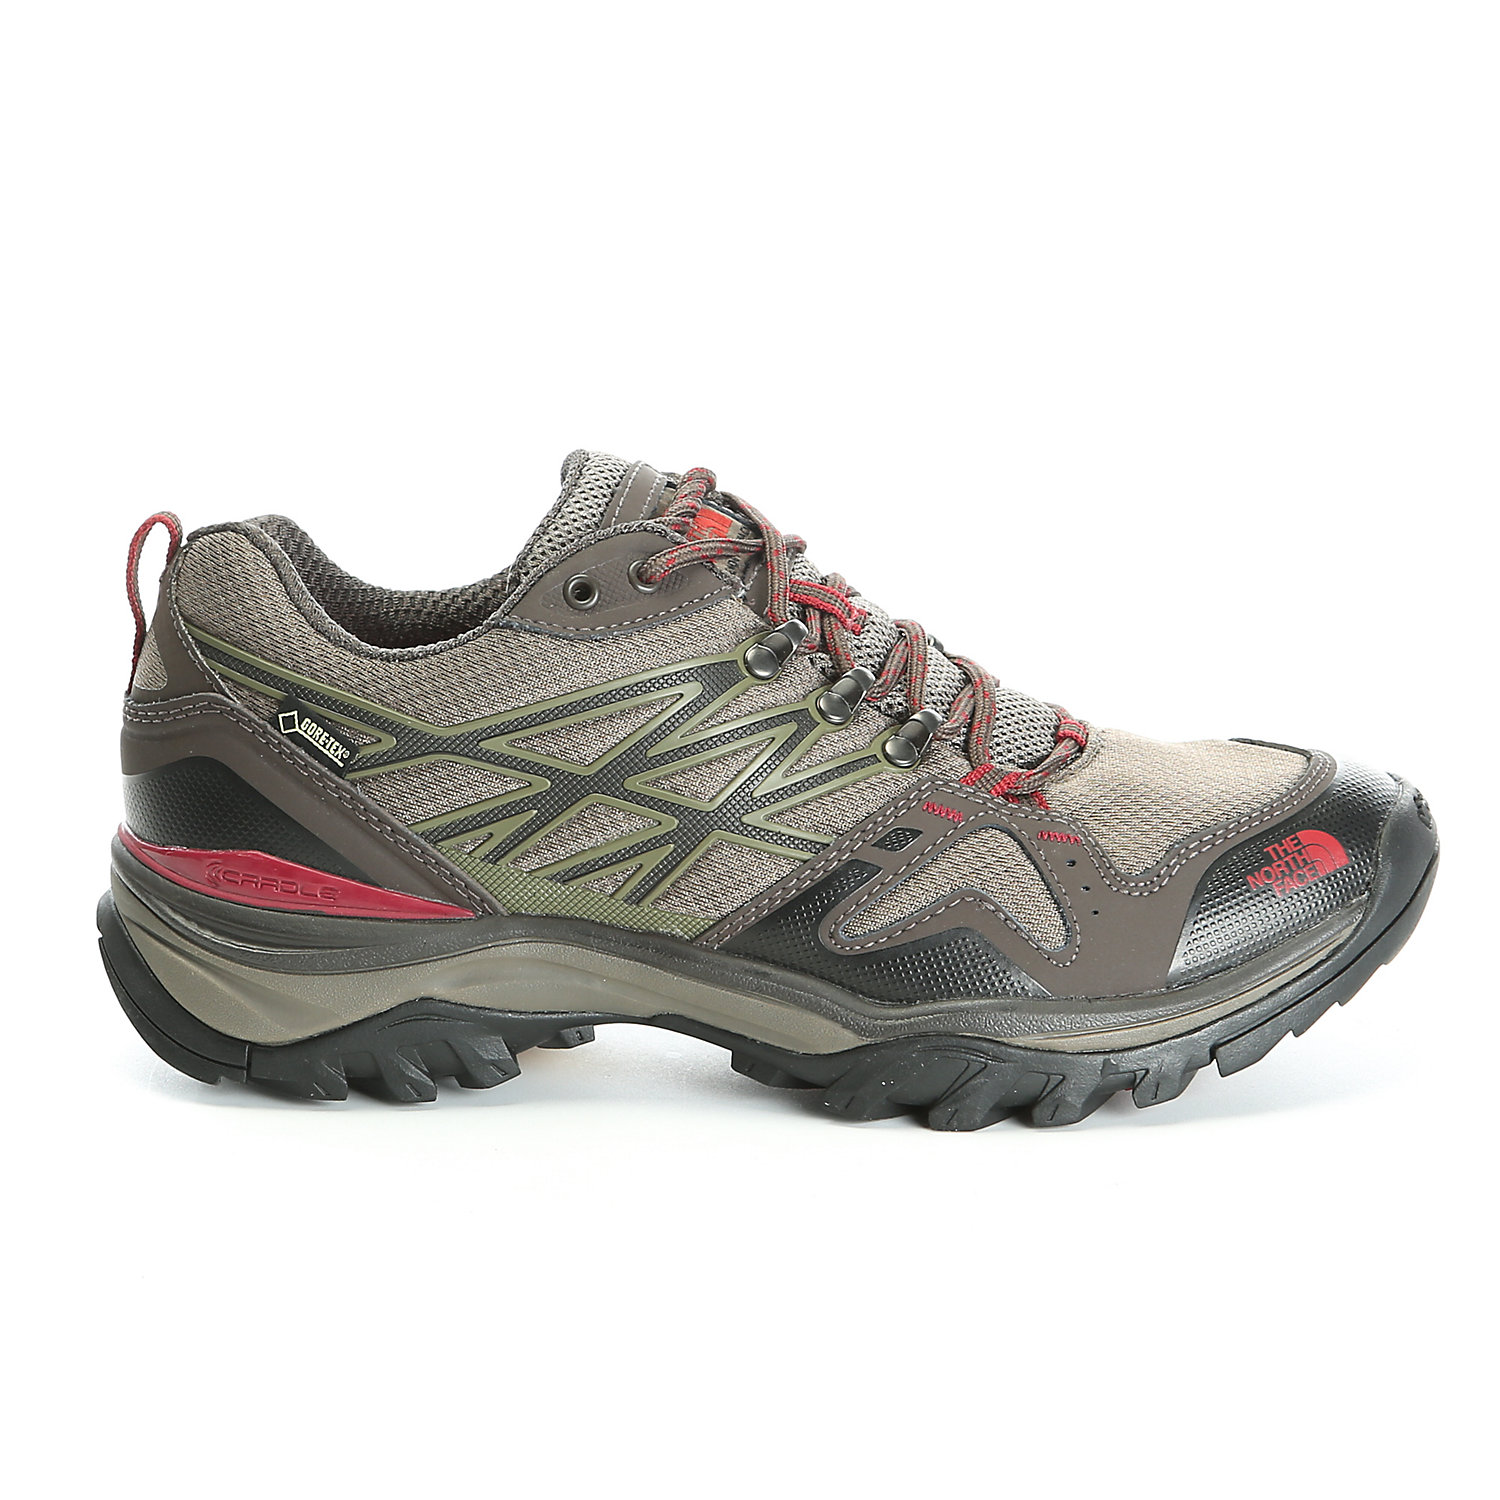 92875e34ac2ca The North Face Men s Hedgehog Fastpack GTX Shoe - Moosejaw